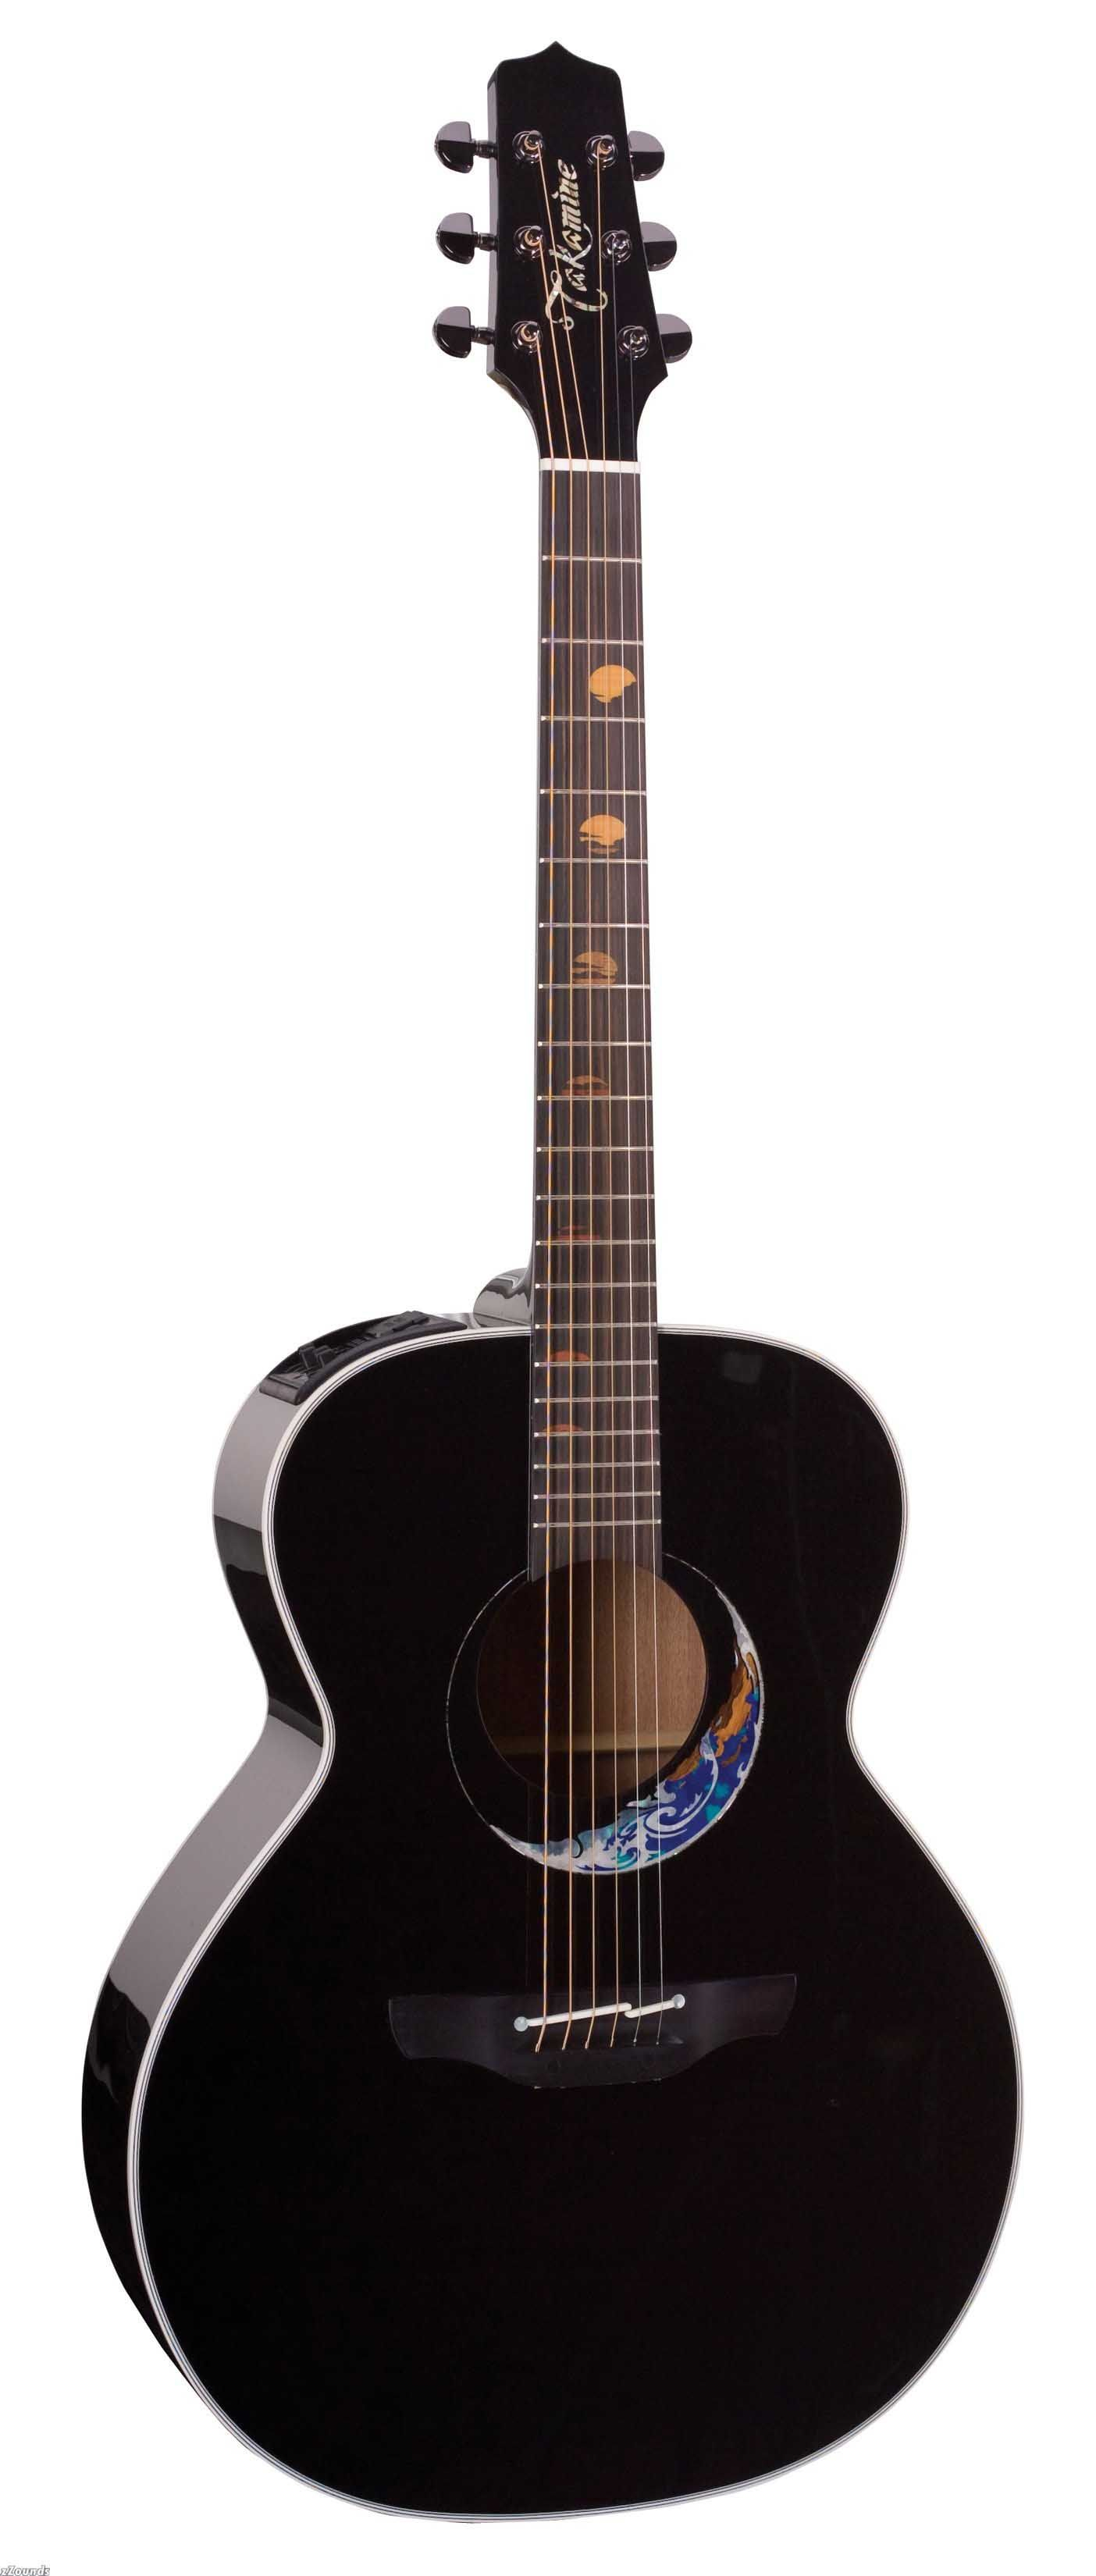 Cheap Takamine Guitars For Sale Takamine Guitars Guitar Acoustic Guitar